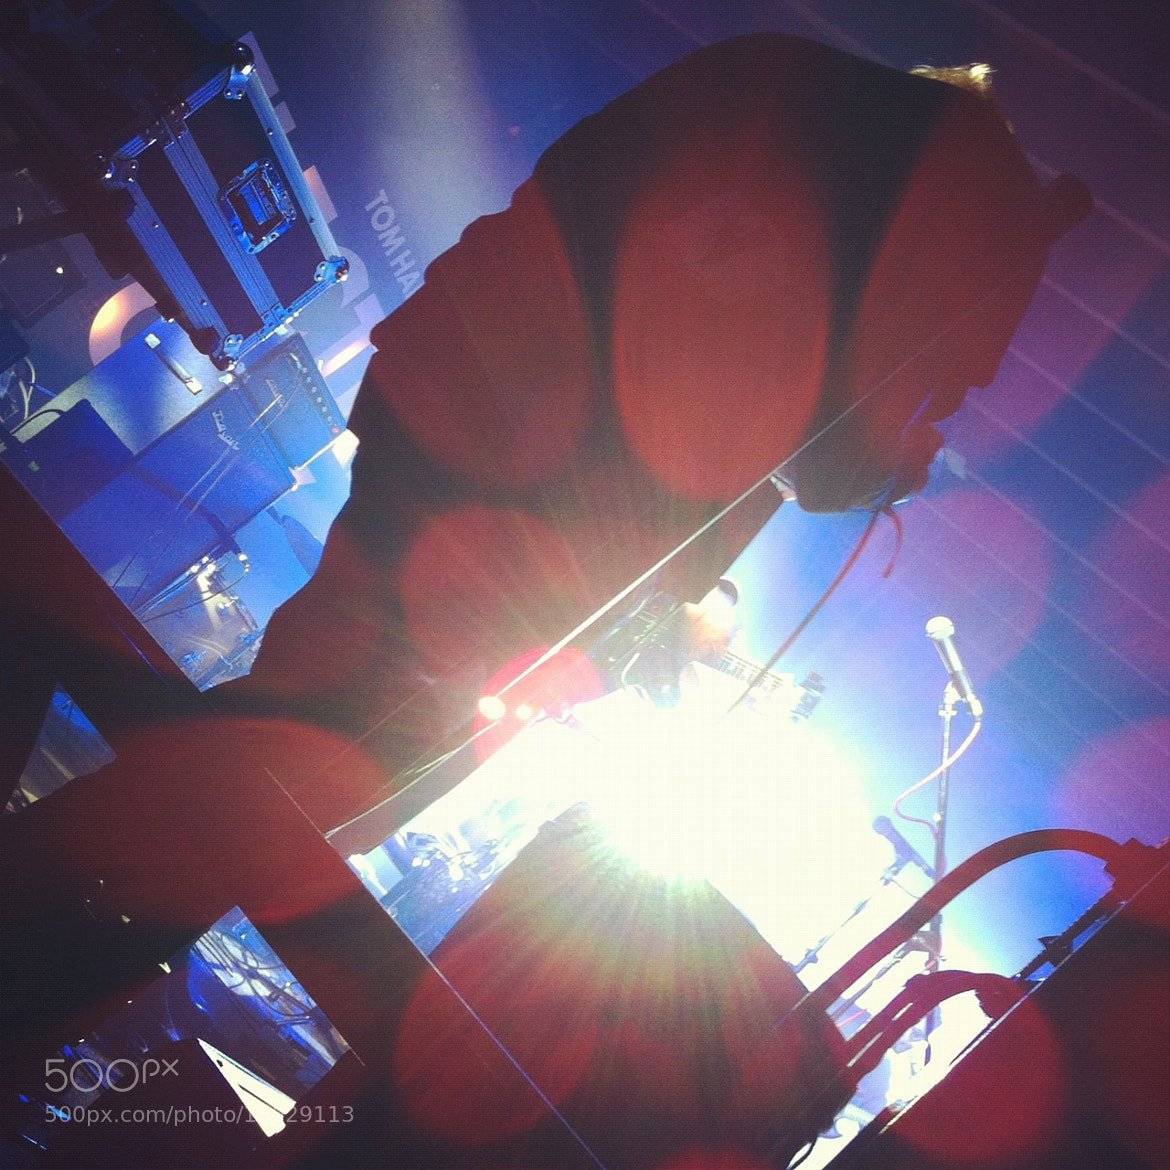 Photograph Music & Light by Alicia Johnson on 500px